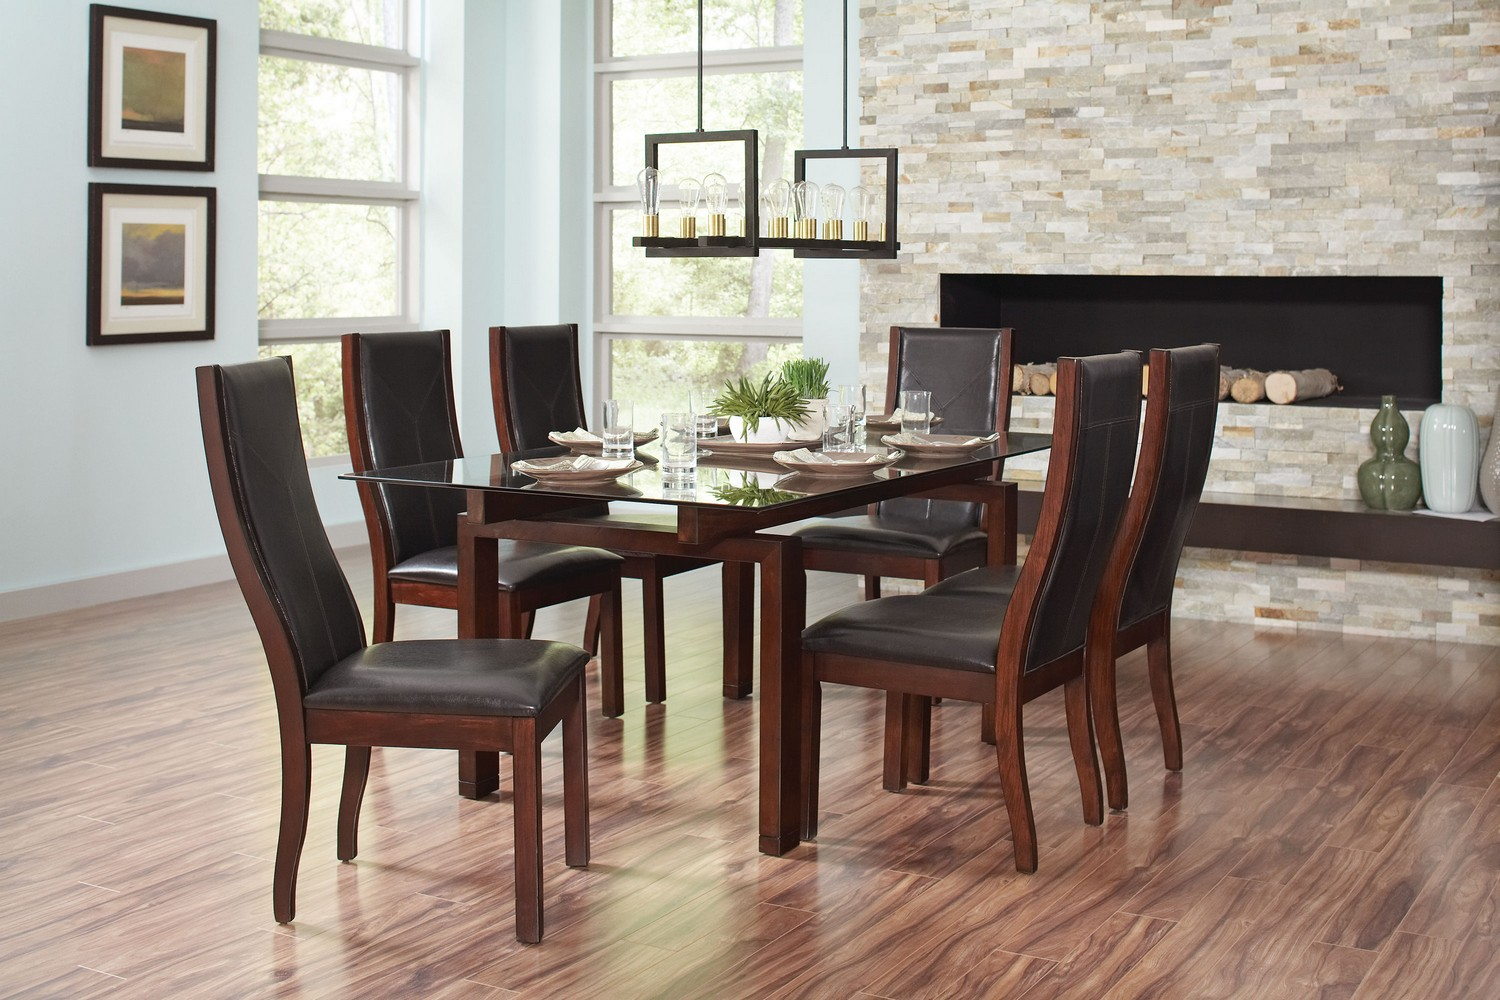 Coaster Rossine Glass Top Rectangular Dining Set - Red Brown